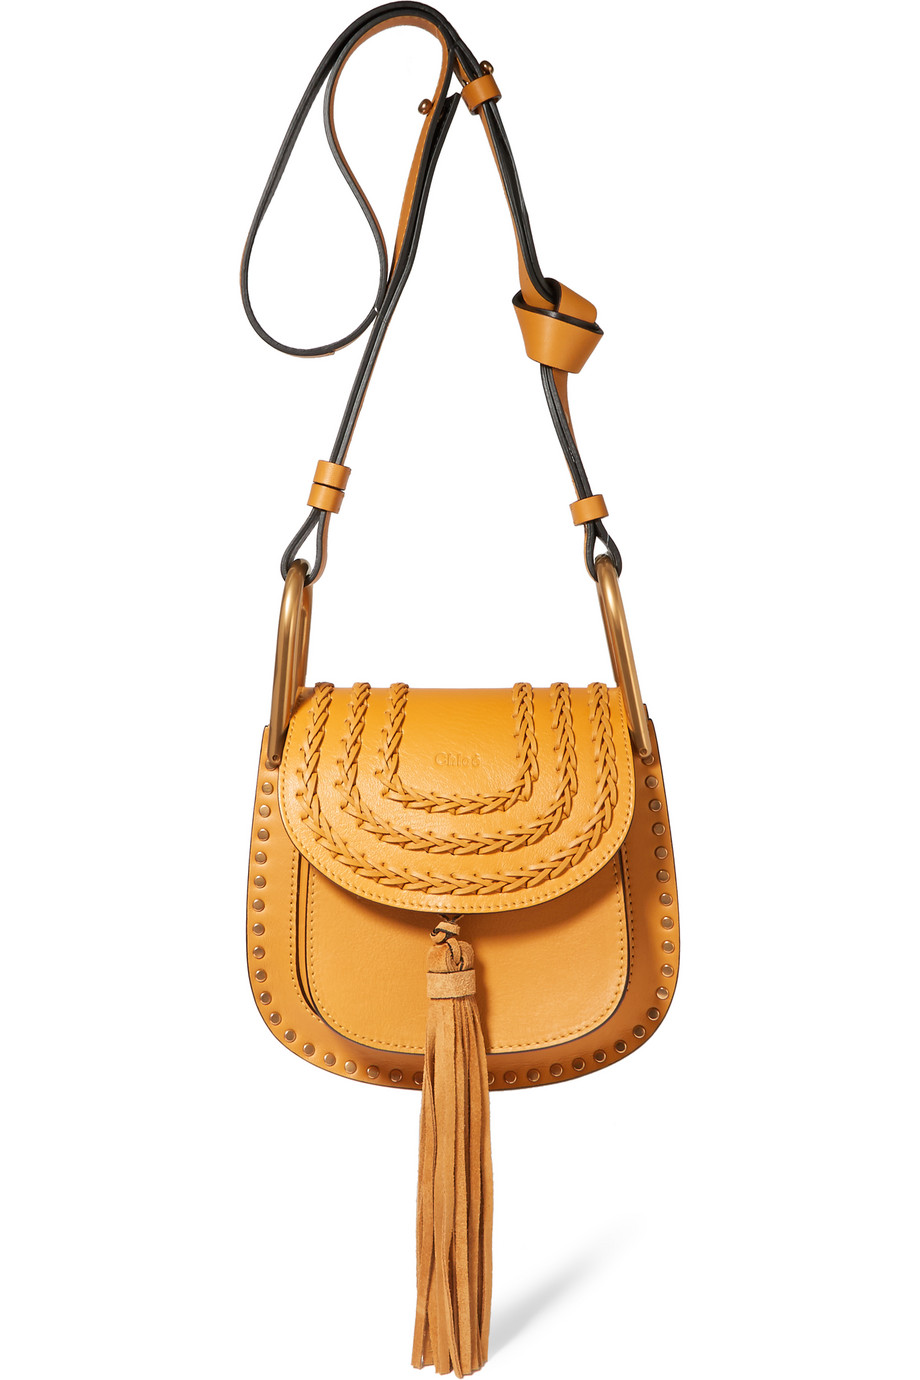 Chloé Hudson Mini Whipstitched Leather Shoulder Bag, Mustard, Women's